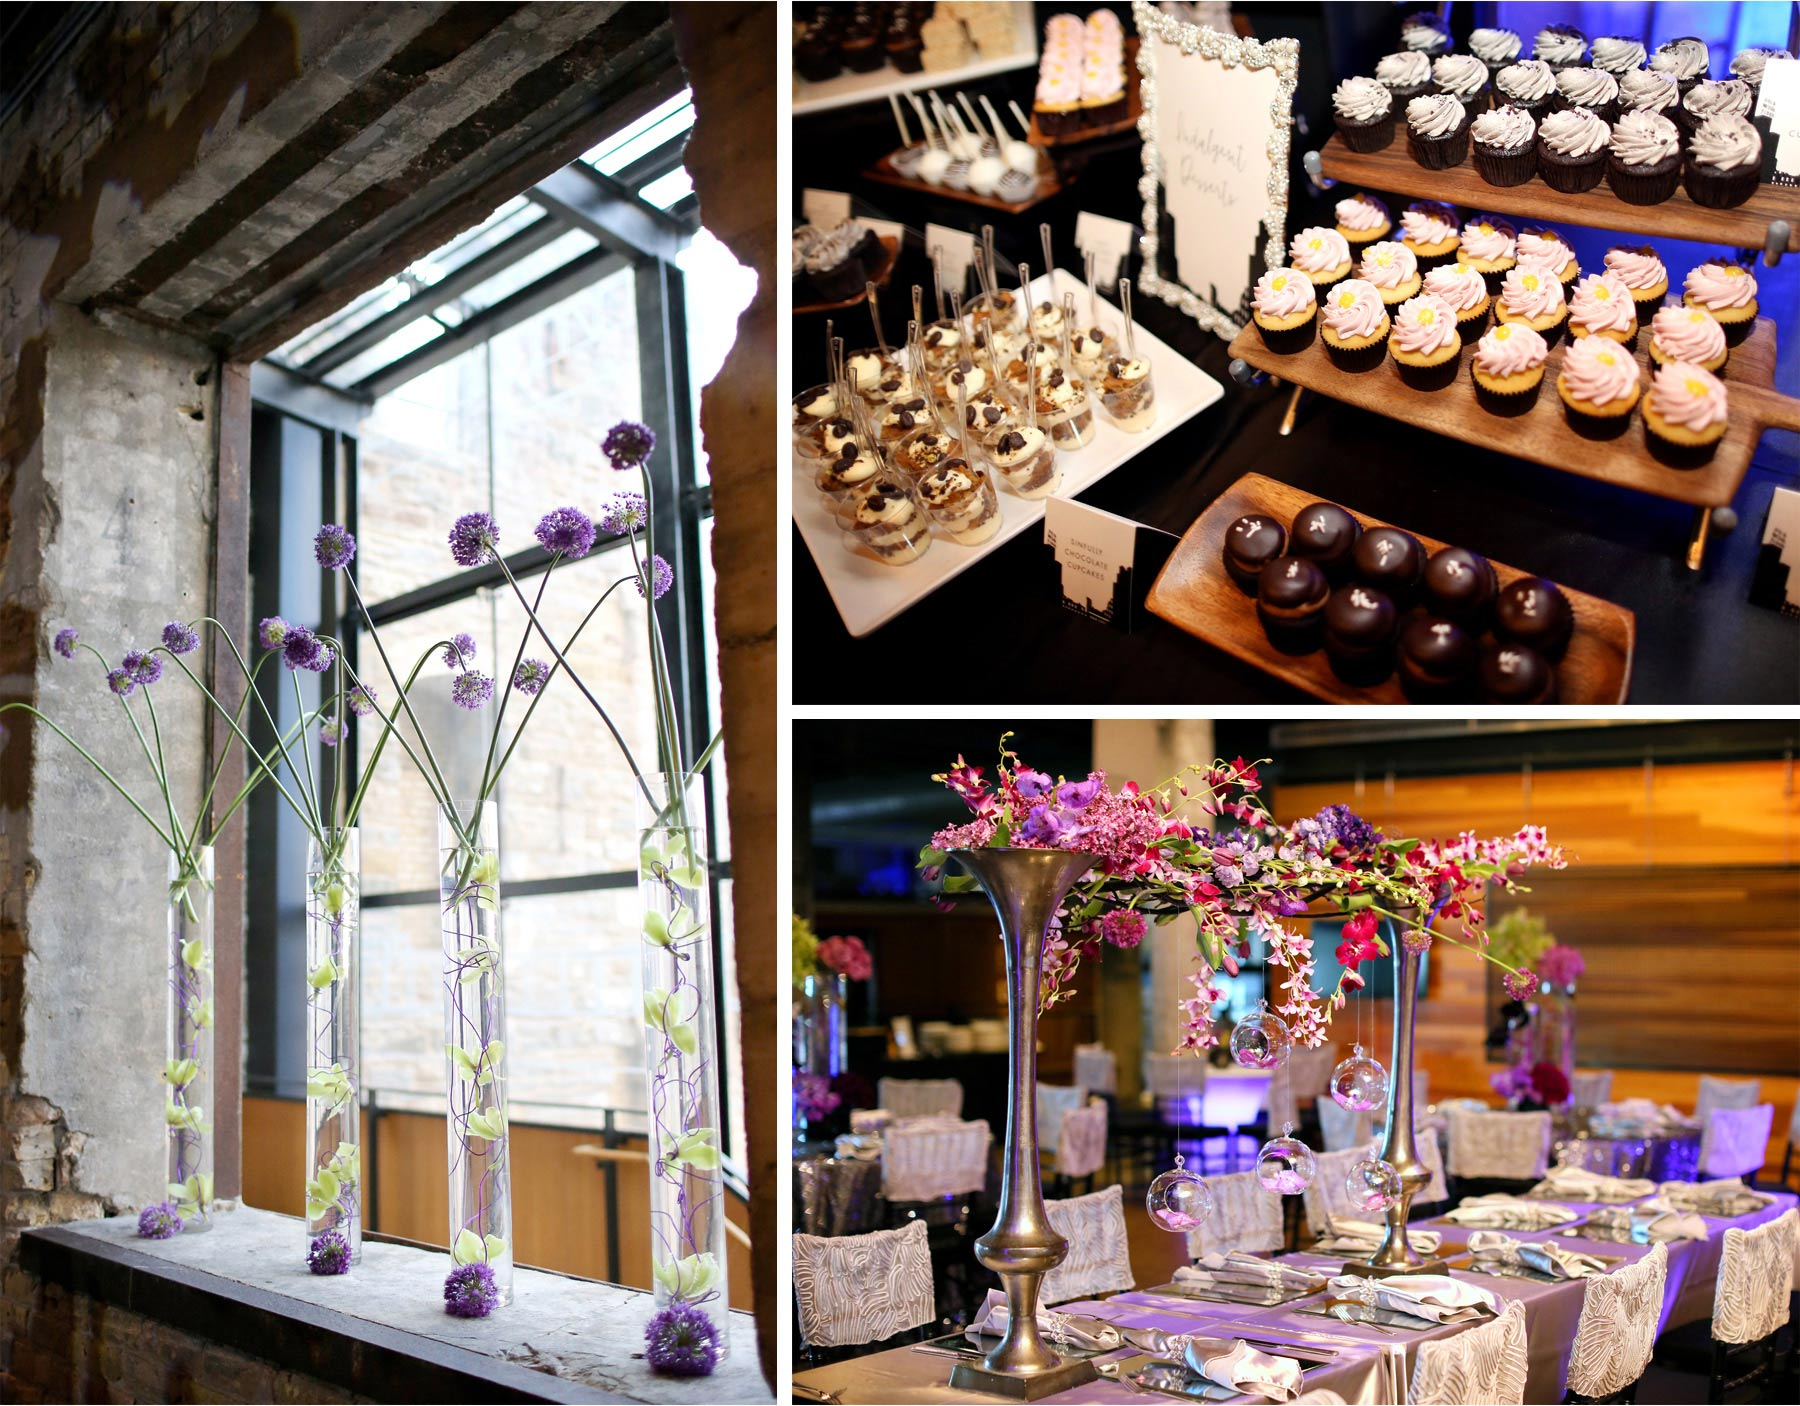 12-Minneapolis-Minnesota-Wedding-Photographer-by-Andrew-Vick-Photography-Spring-Mill-City-Museum-Downtown-Decor-Details-Decorations-Flowers-Cupcakes-Deserts-Dannette-and-Darren.jpg